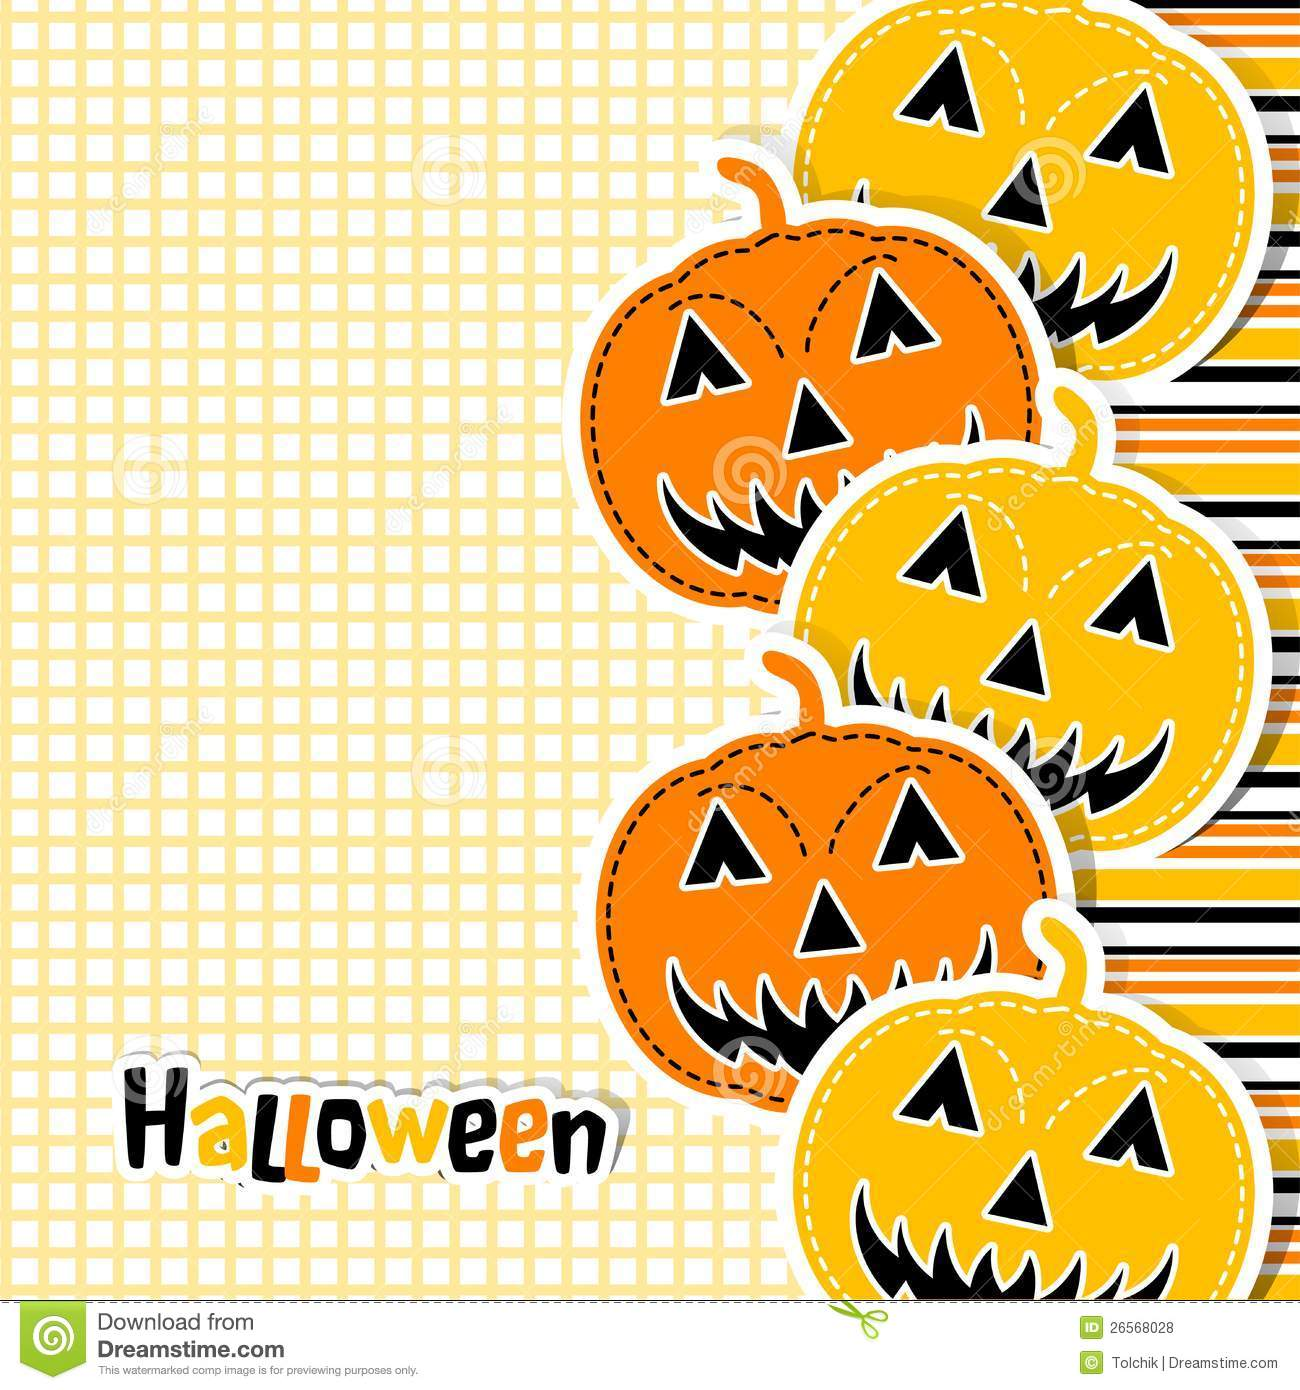 halloween card templates - celo.yogawithjo.co